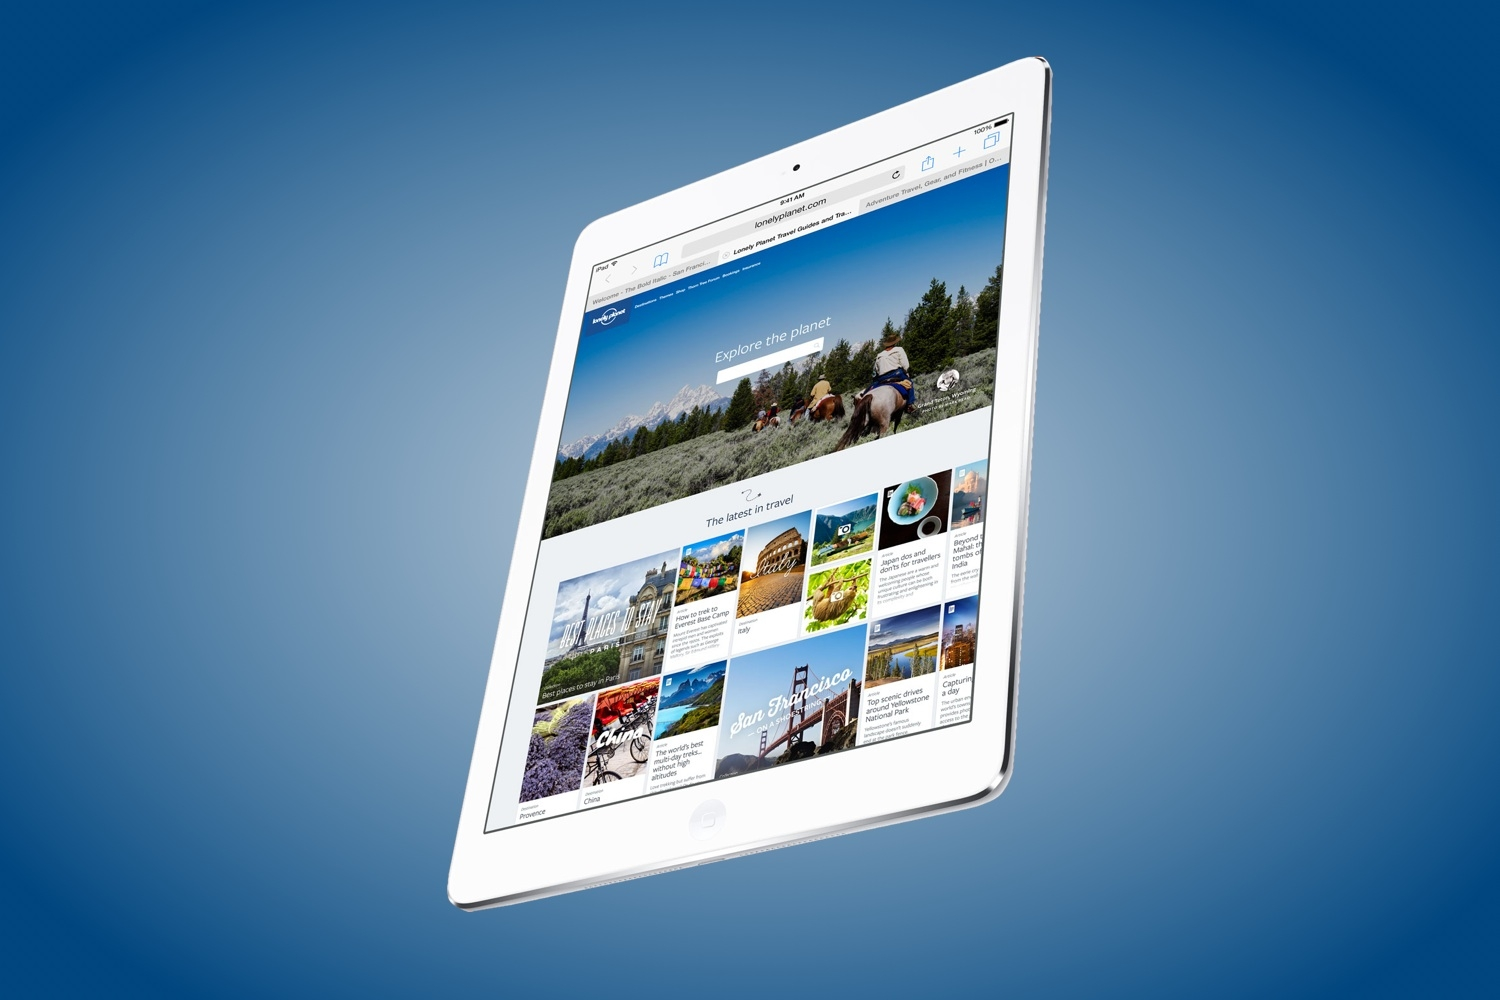 4 Things We Want From The New iPad Air 2